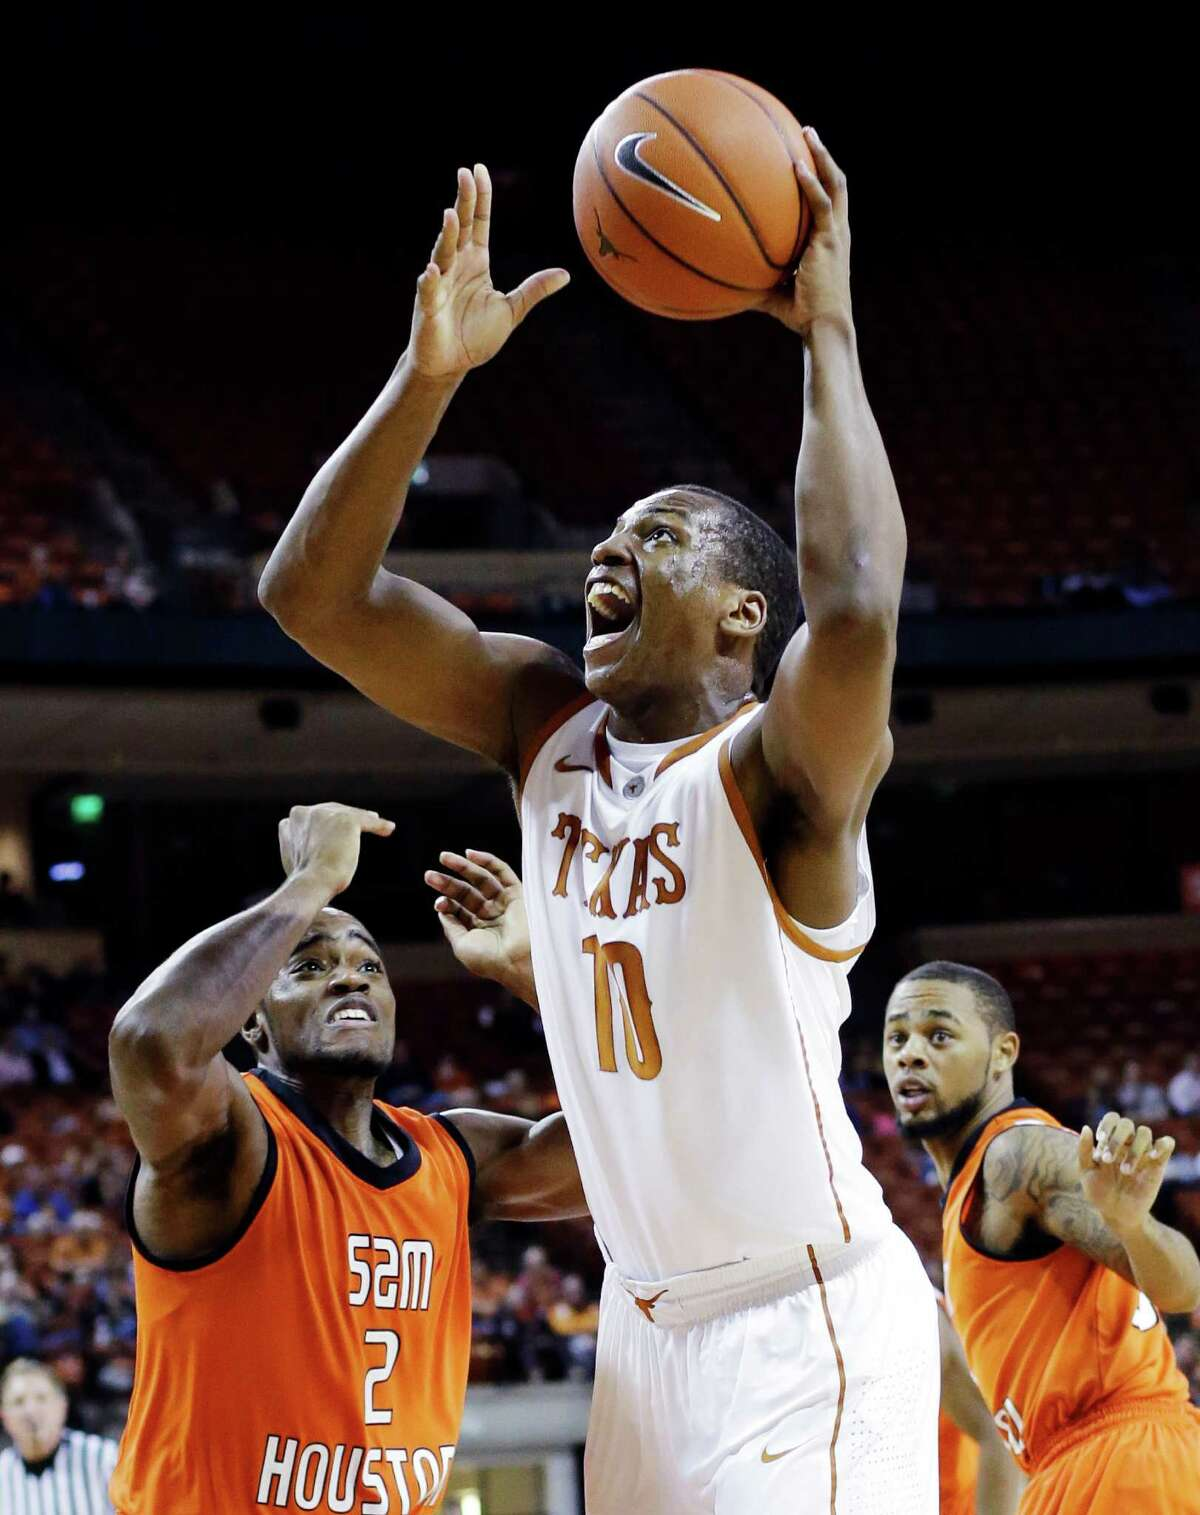 Texas' Jonathan Holmes (10) shoots over Sam Houston State's Marquel McKinney (2) during the first half of an NCAA college basketball game, Tuesday, Nov. 27, 2012, in Austin, Texas. (AP Photo/Eric Gay)